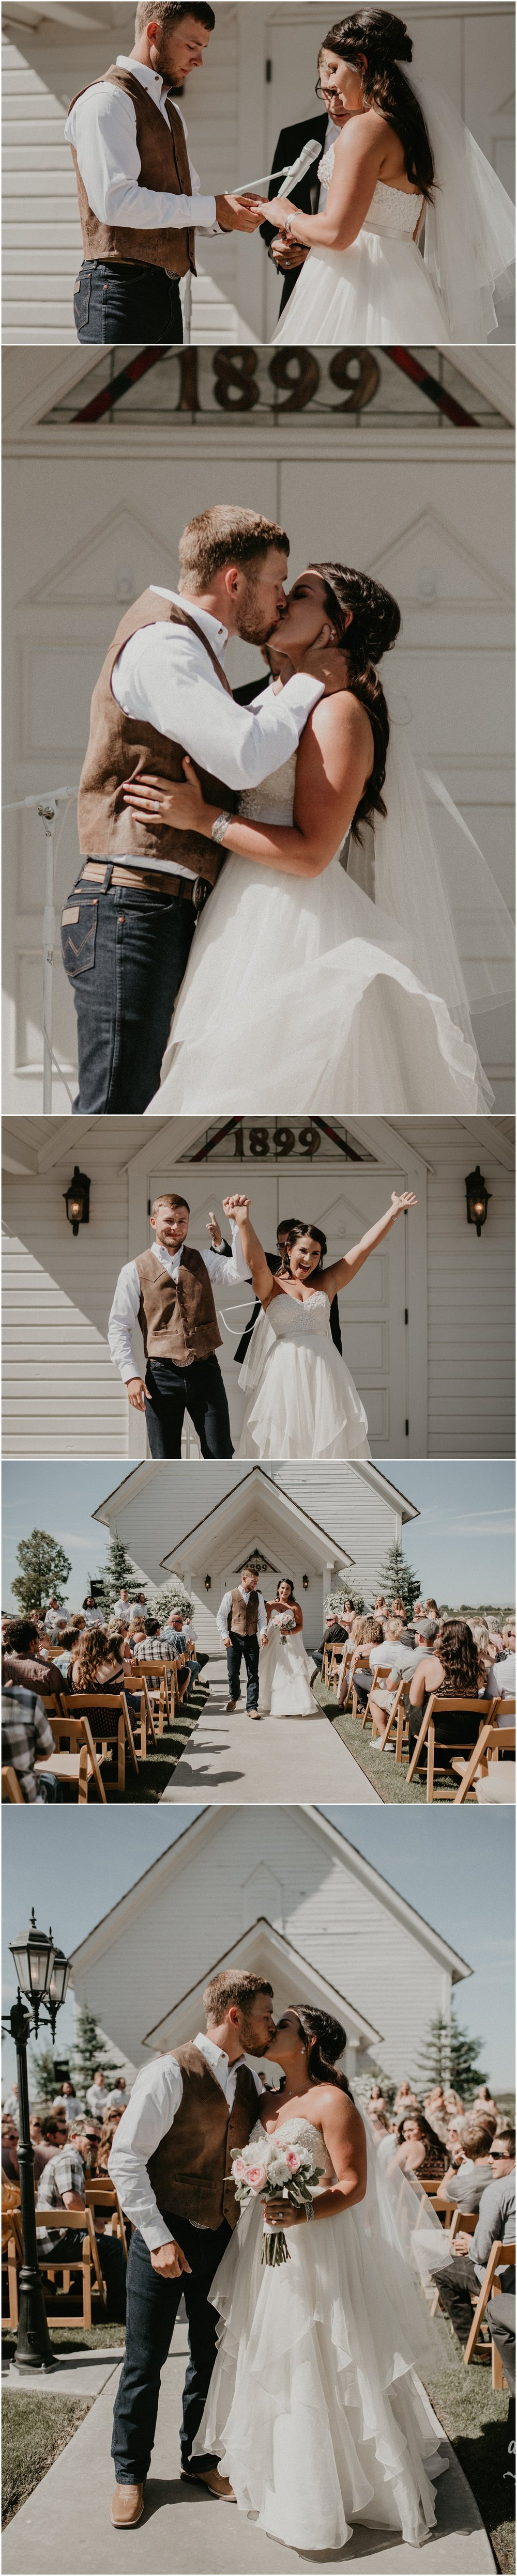 Boise Wedding Photographer Makayla Madden Photography Still Water Hollow Boise Wedding Venue Country Chic Rustic Bride and Groom Idaho Bride Summer White Chapel